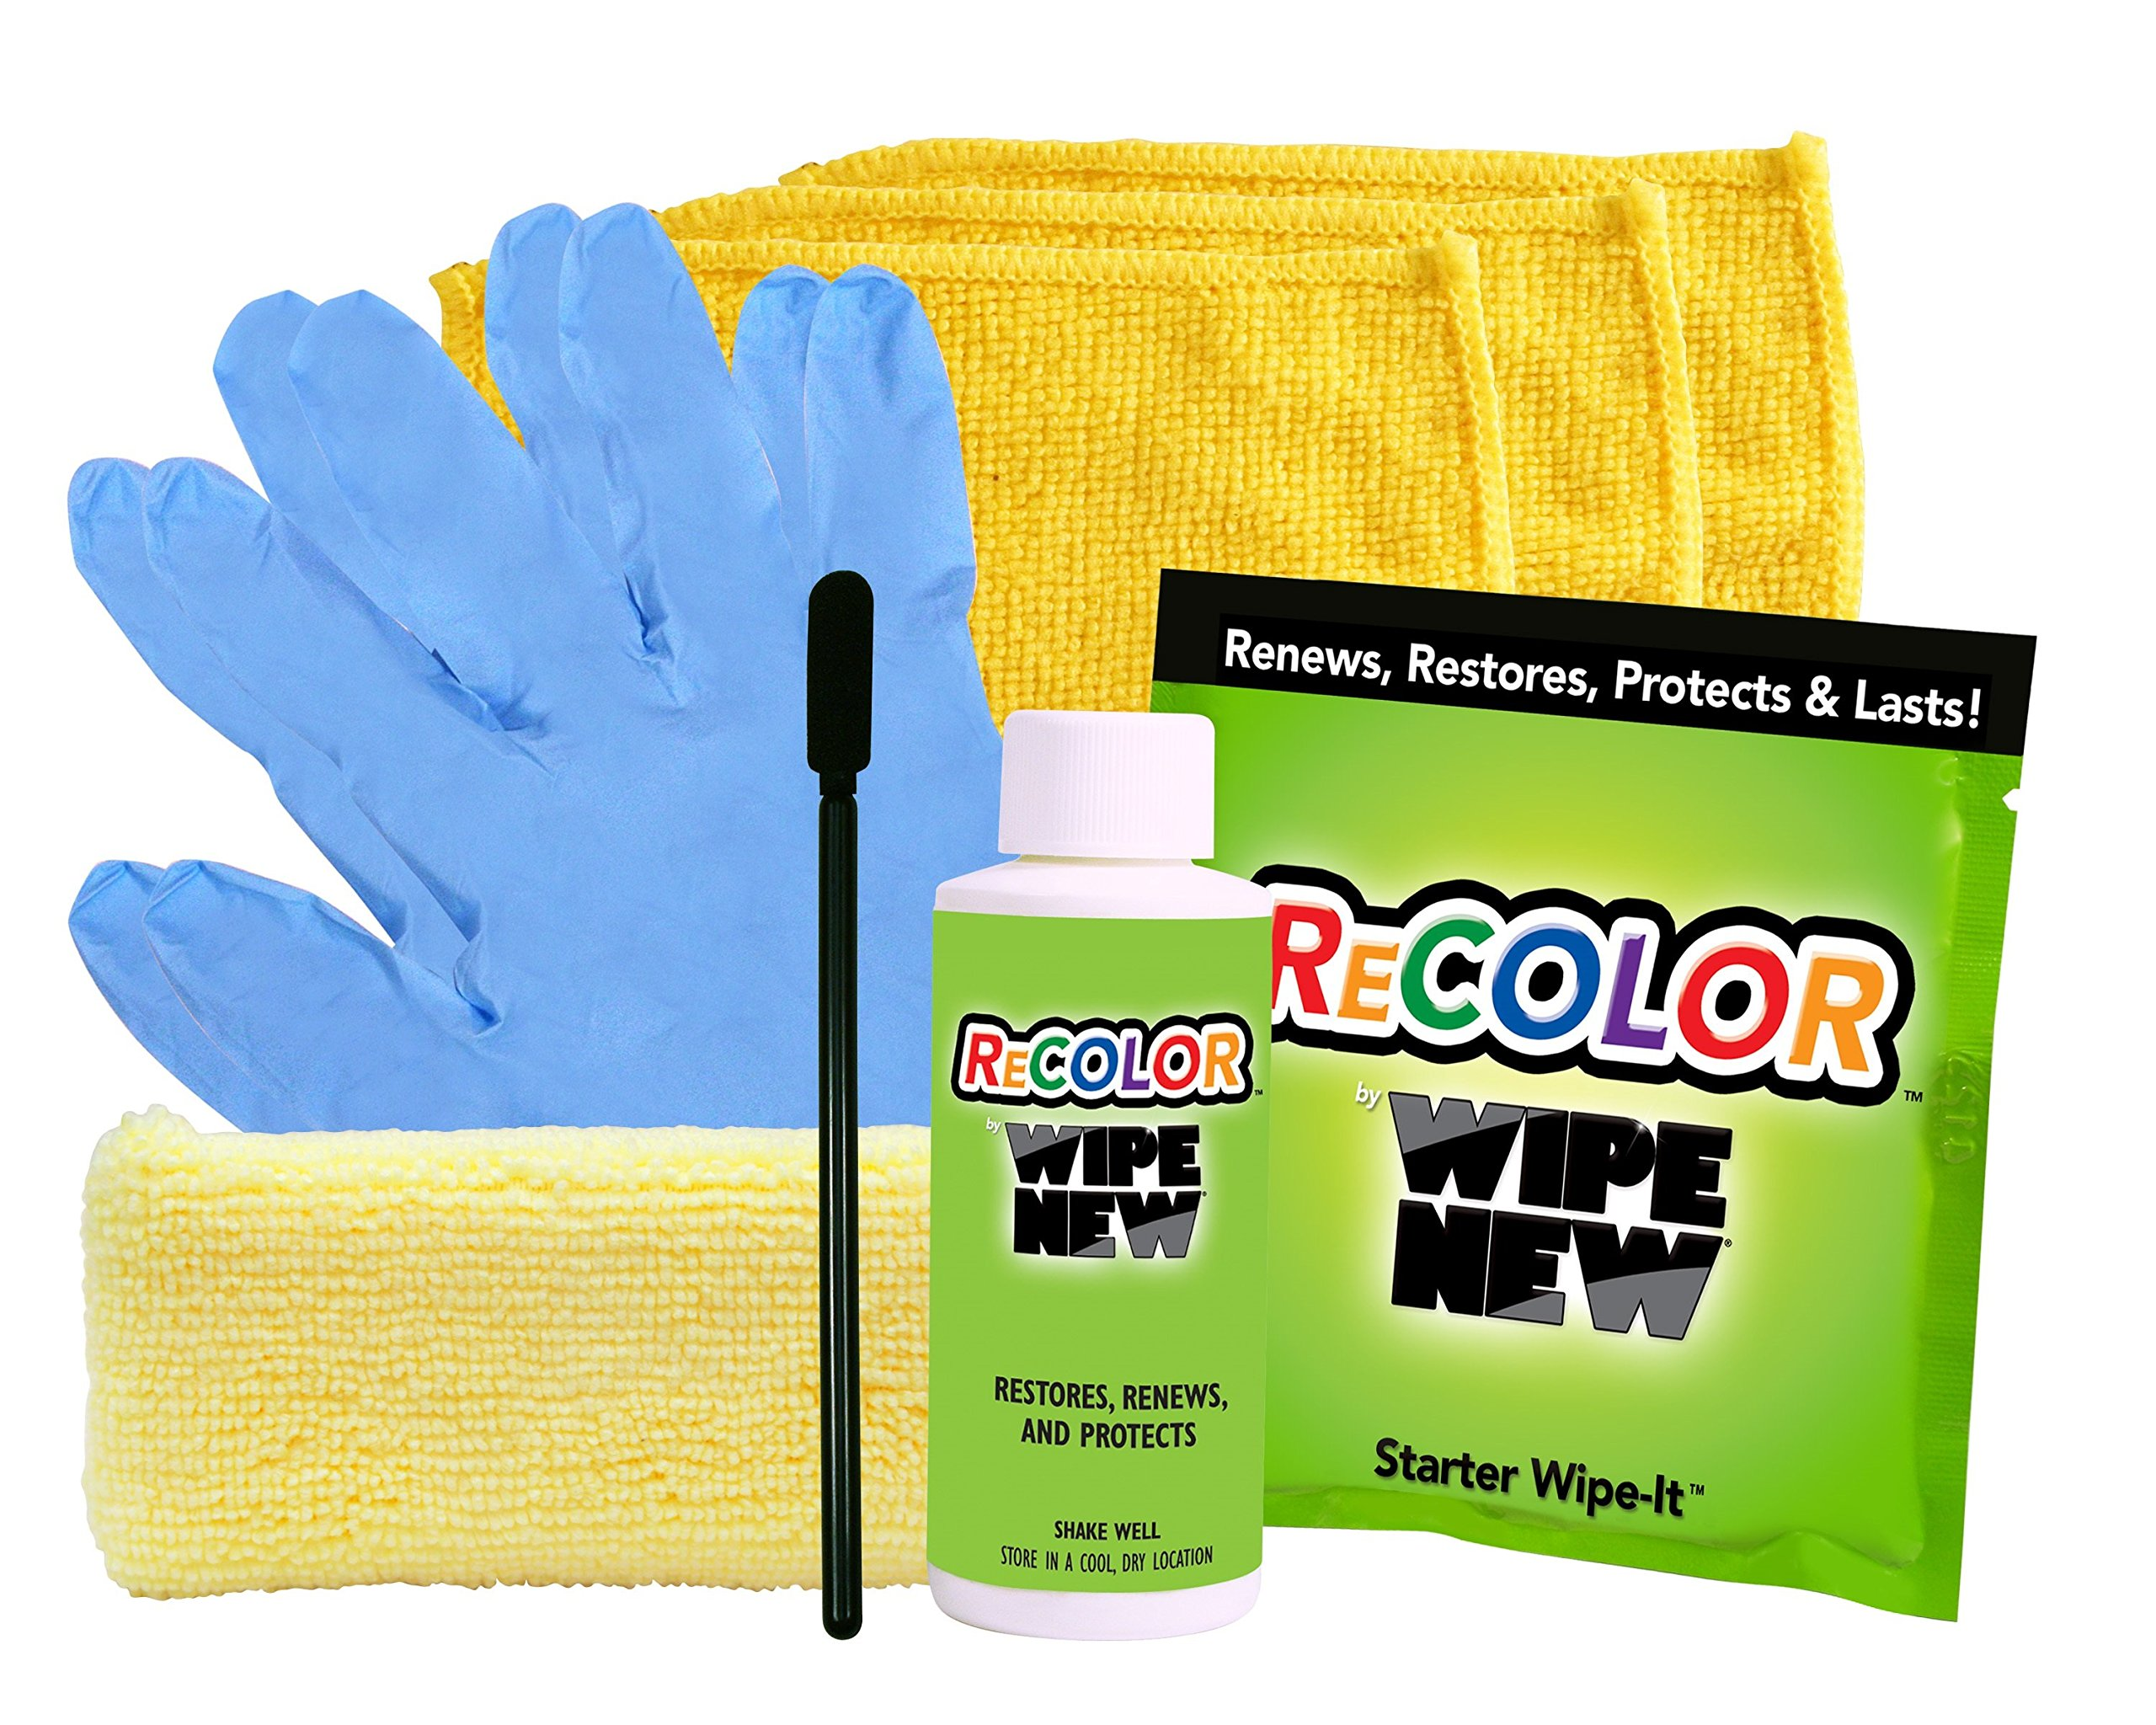 Rust-Oleum RRCAL Wipe New Multi-Surface Formula ReCOLOR Kit, 2 oz, Clear by Rust-Oleum (Image #7)